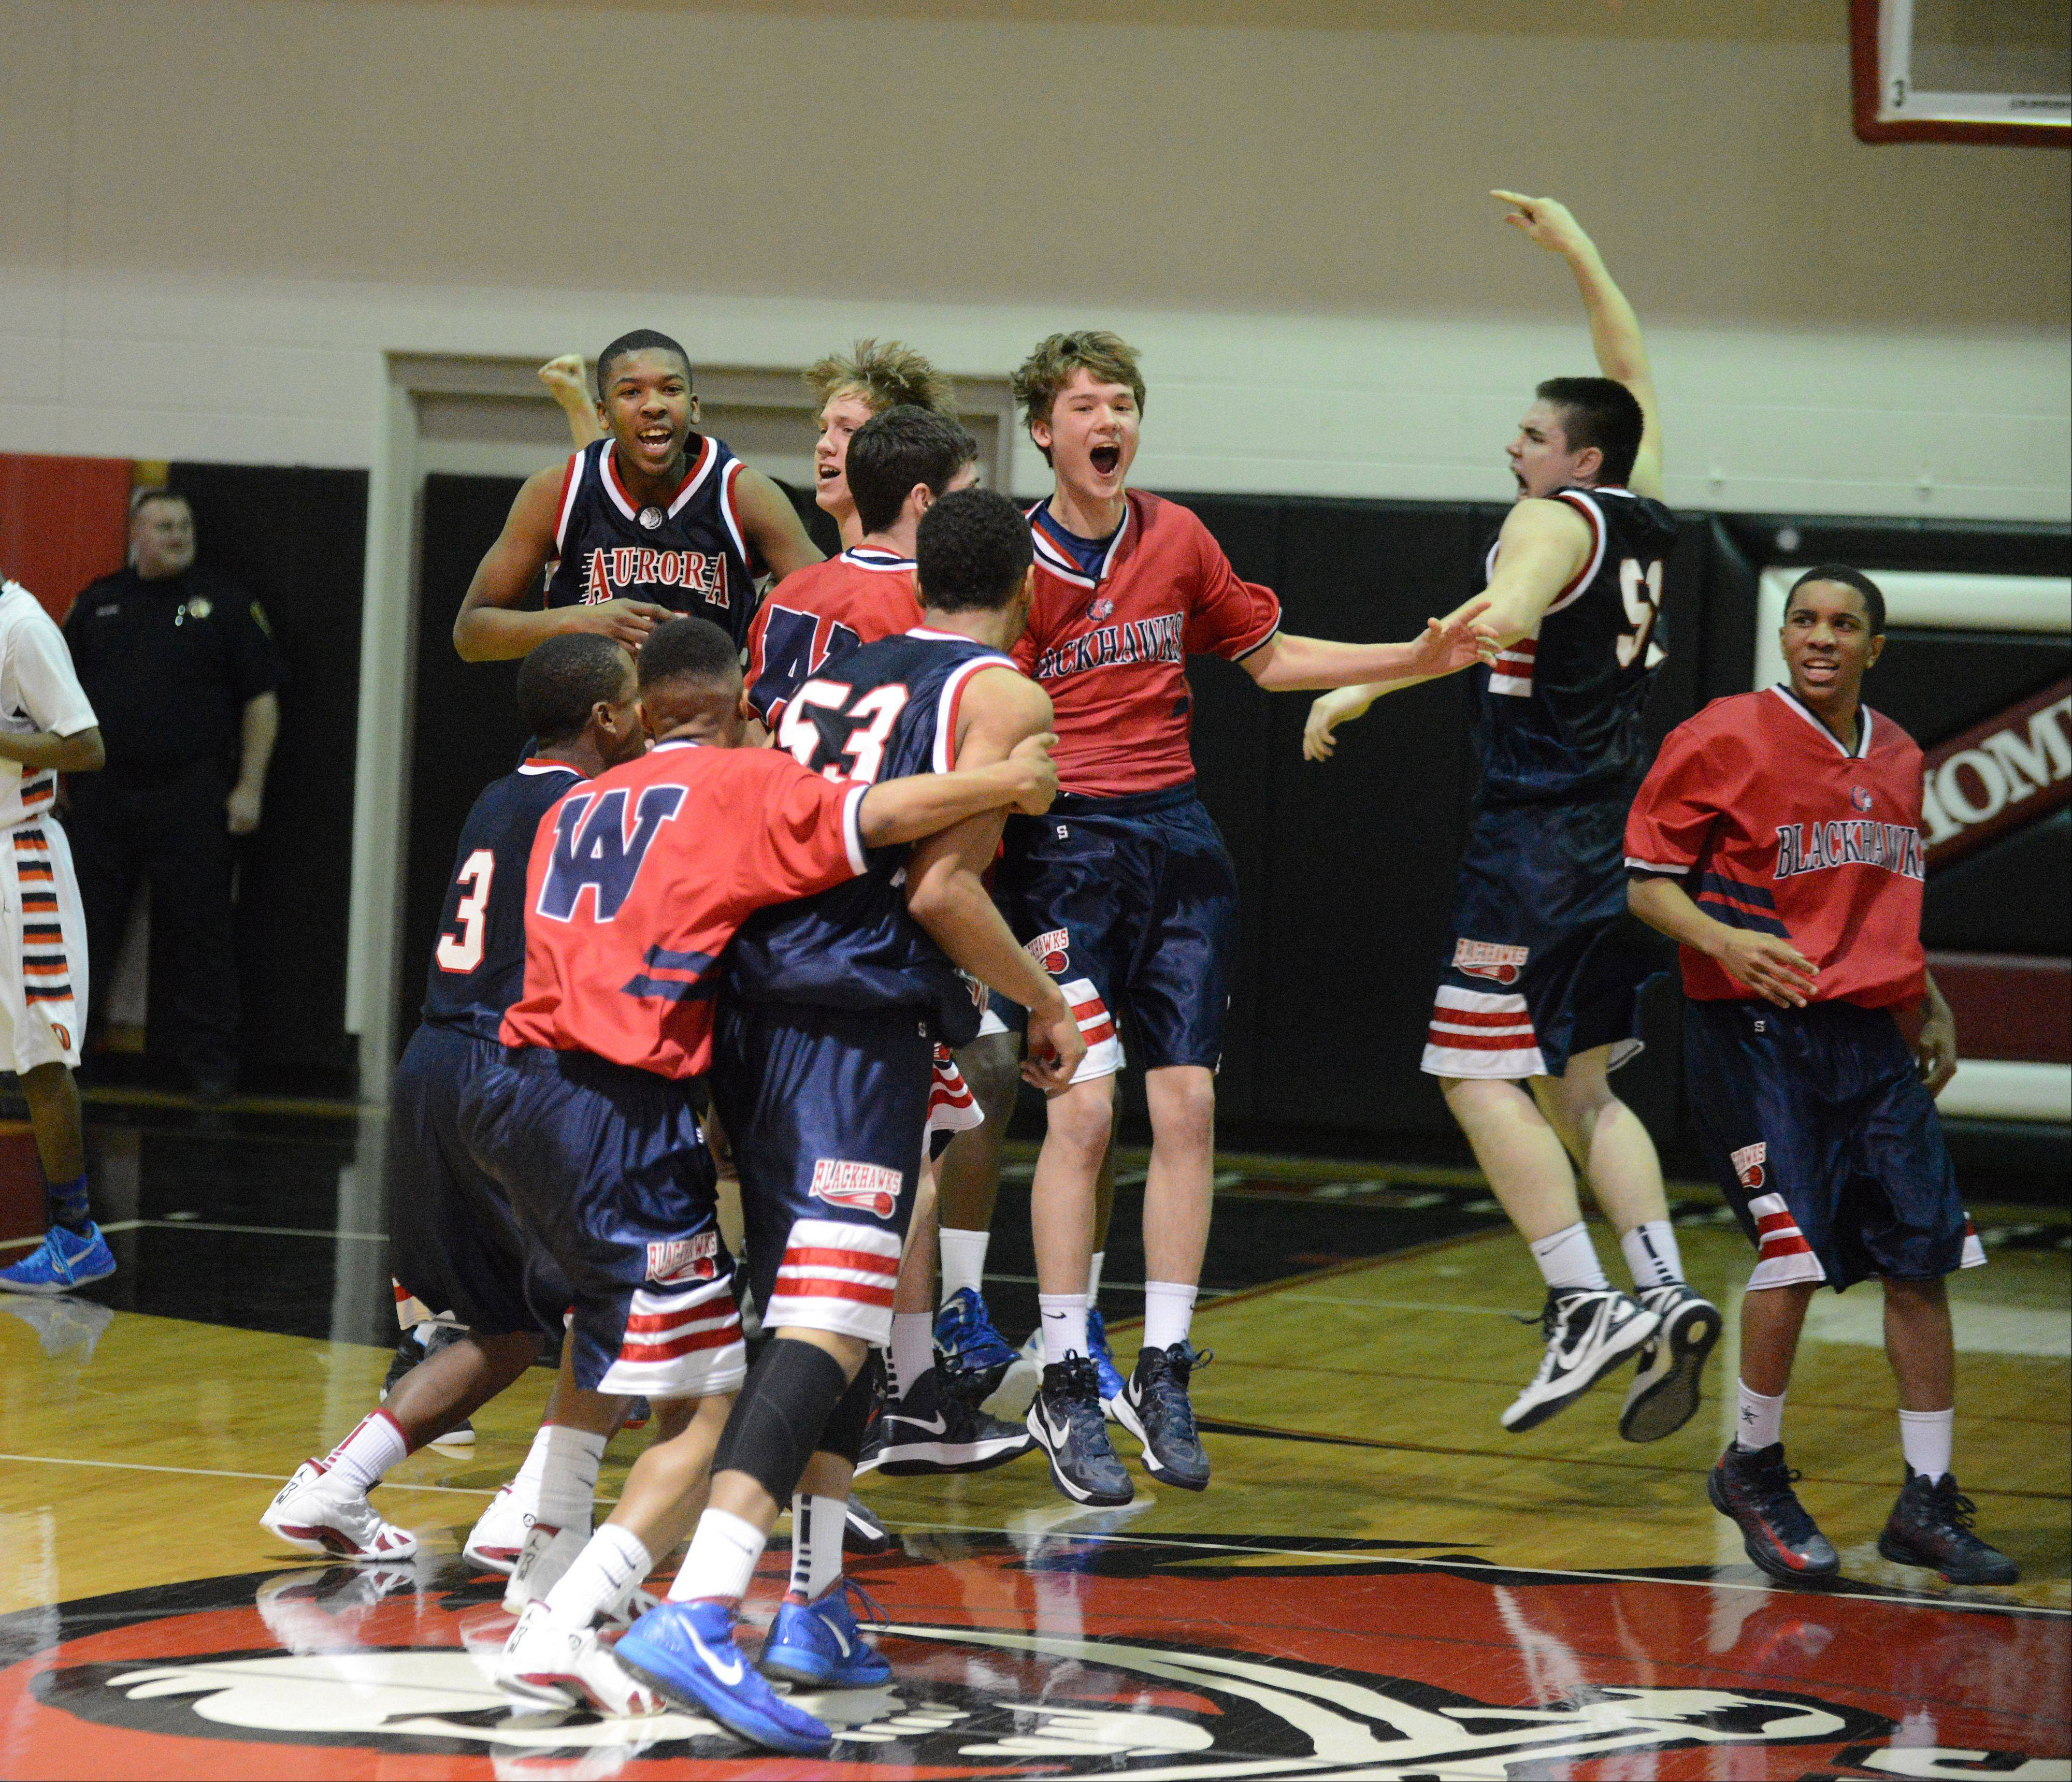 West Aurora reacts to the win during the West Aurora vs. Oswego game at Bolingbrook sectional semifinals Wedneaday.